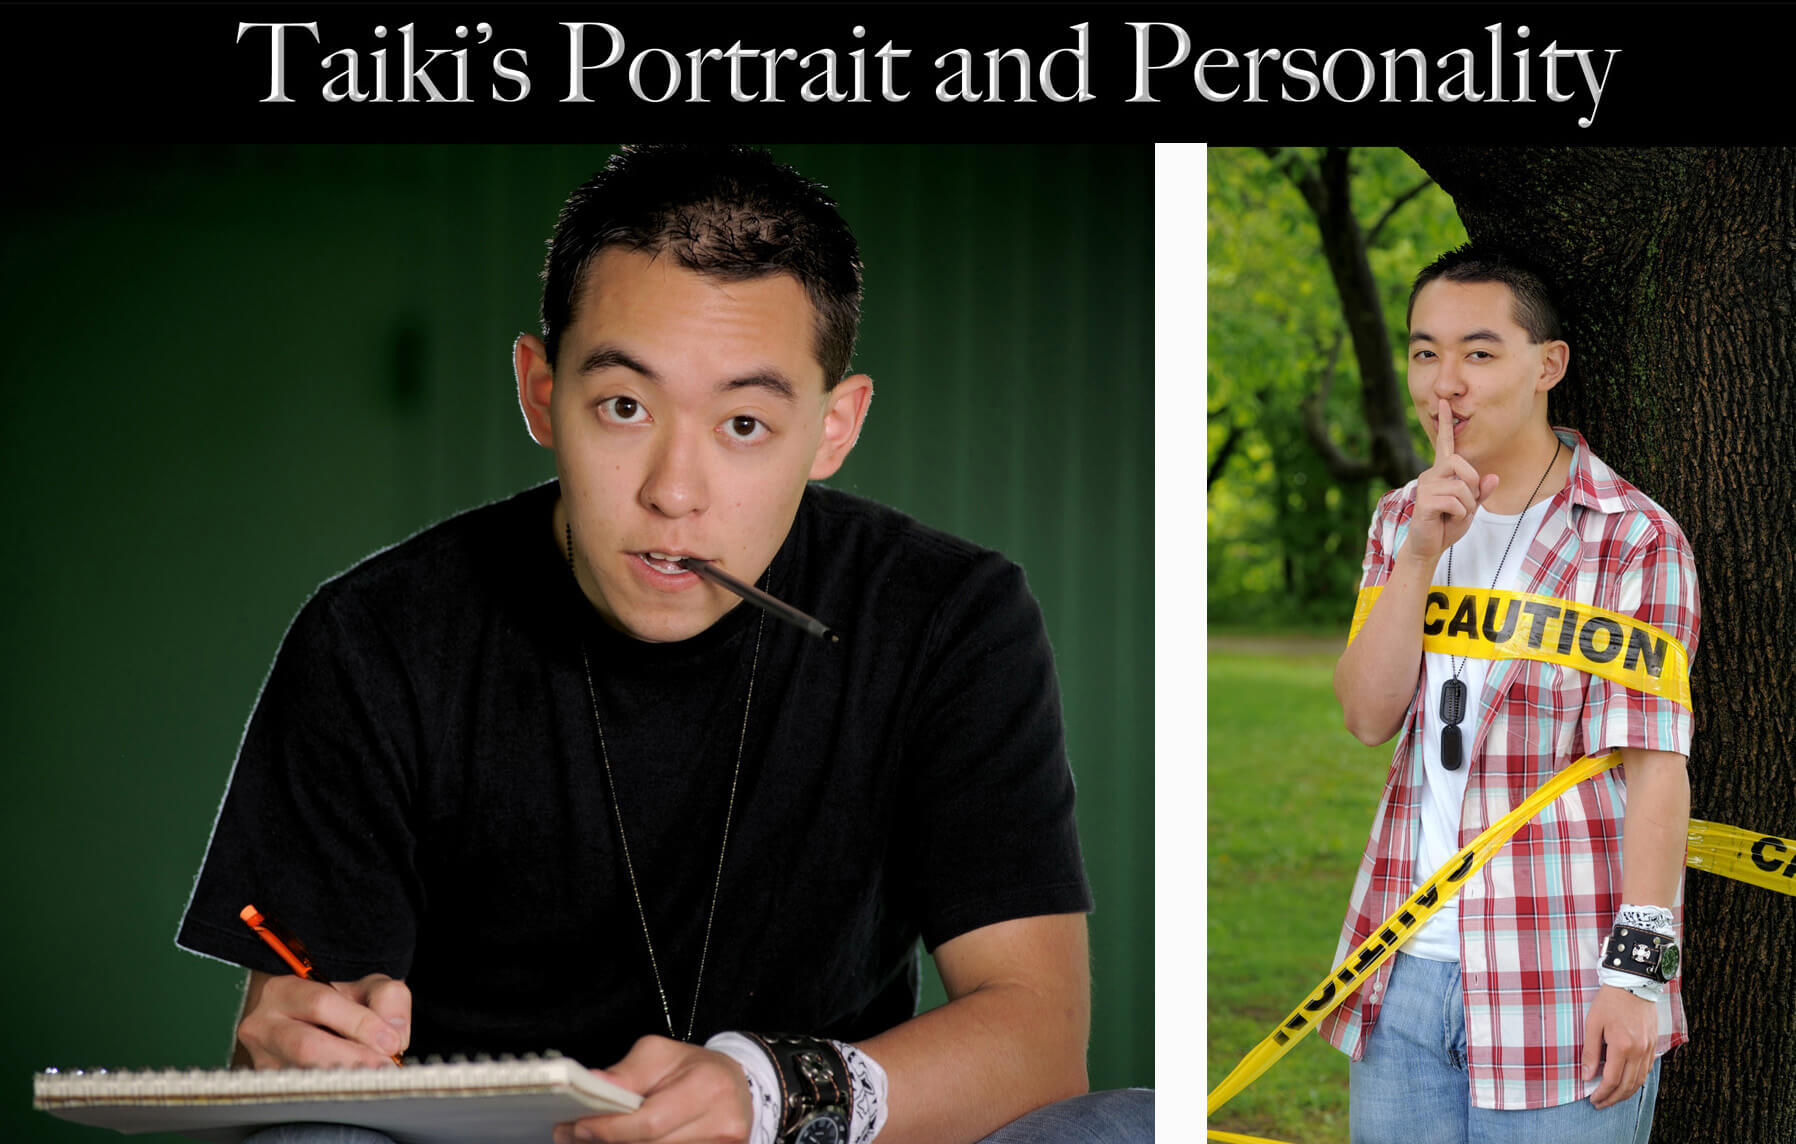 An Athens High school senior who is artistic and quirky put his personality on full display during his senior pictures session.